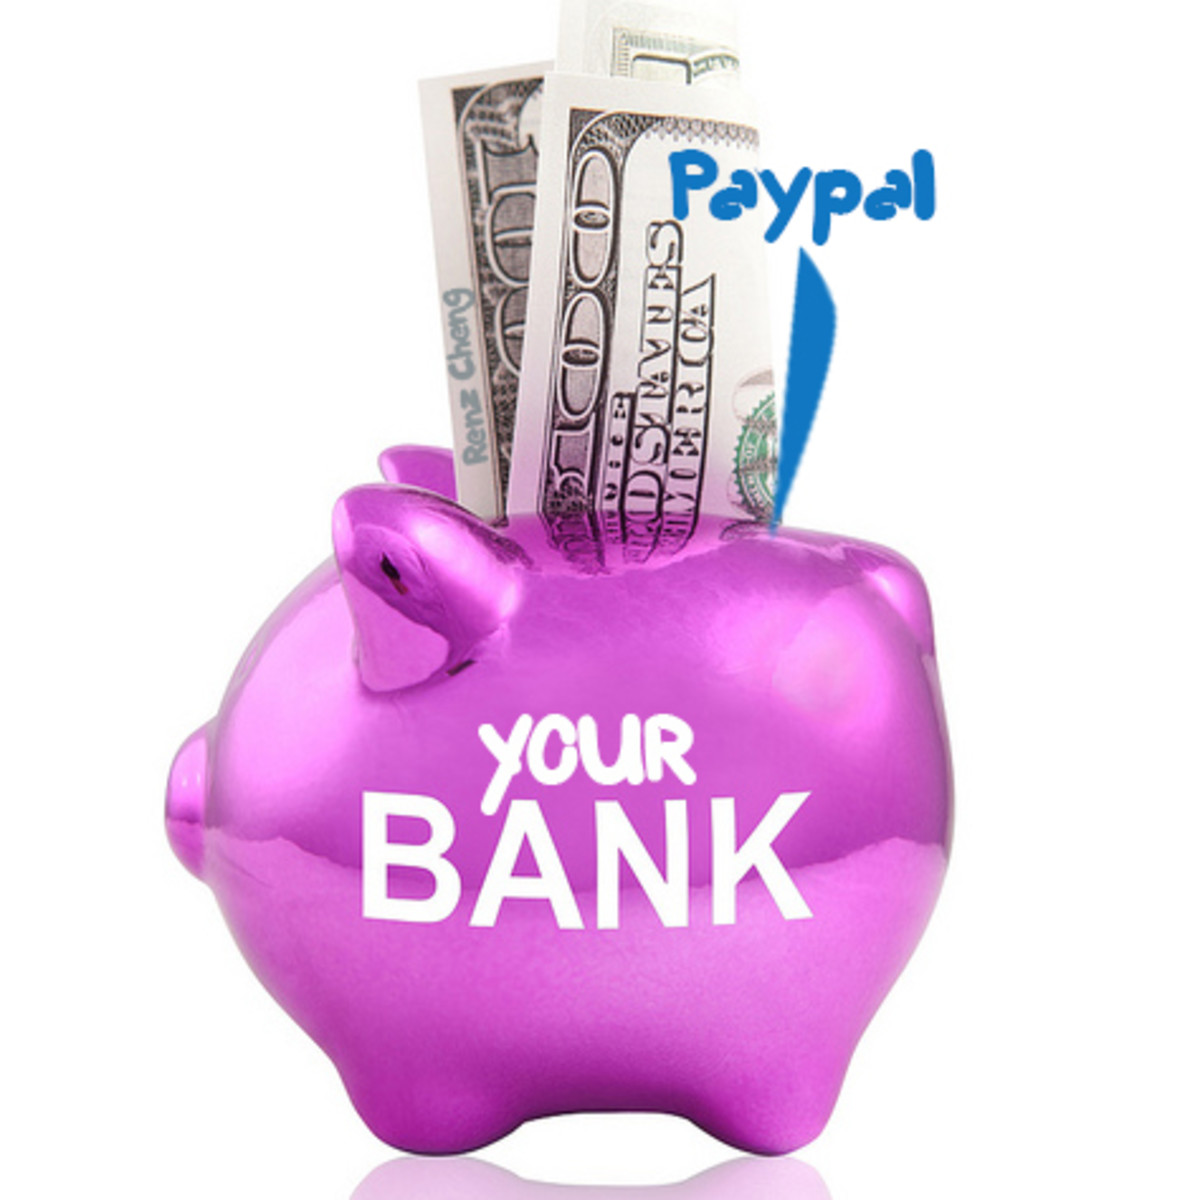 It's time to withdraw your hard-earned money from Paypal to your own Bank Account!